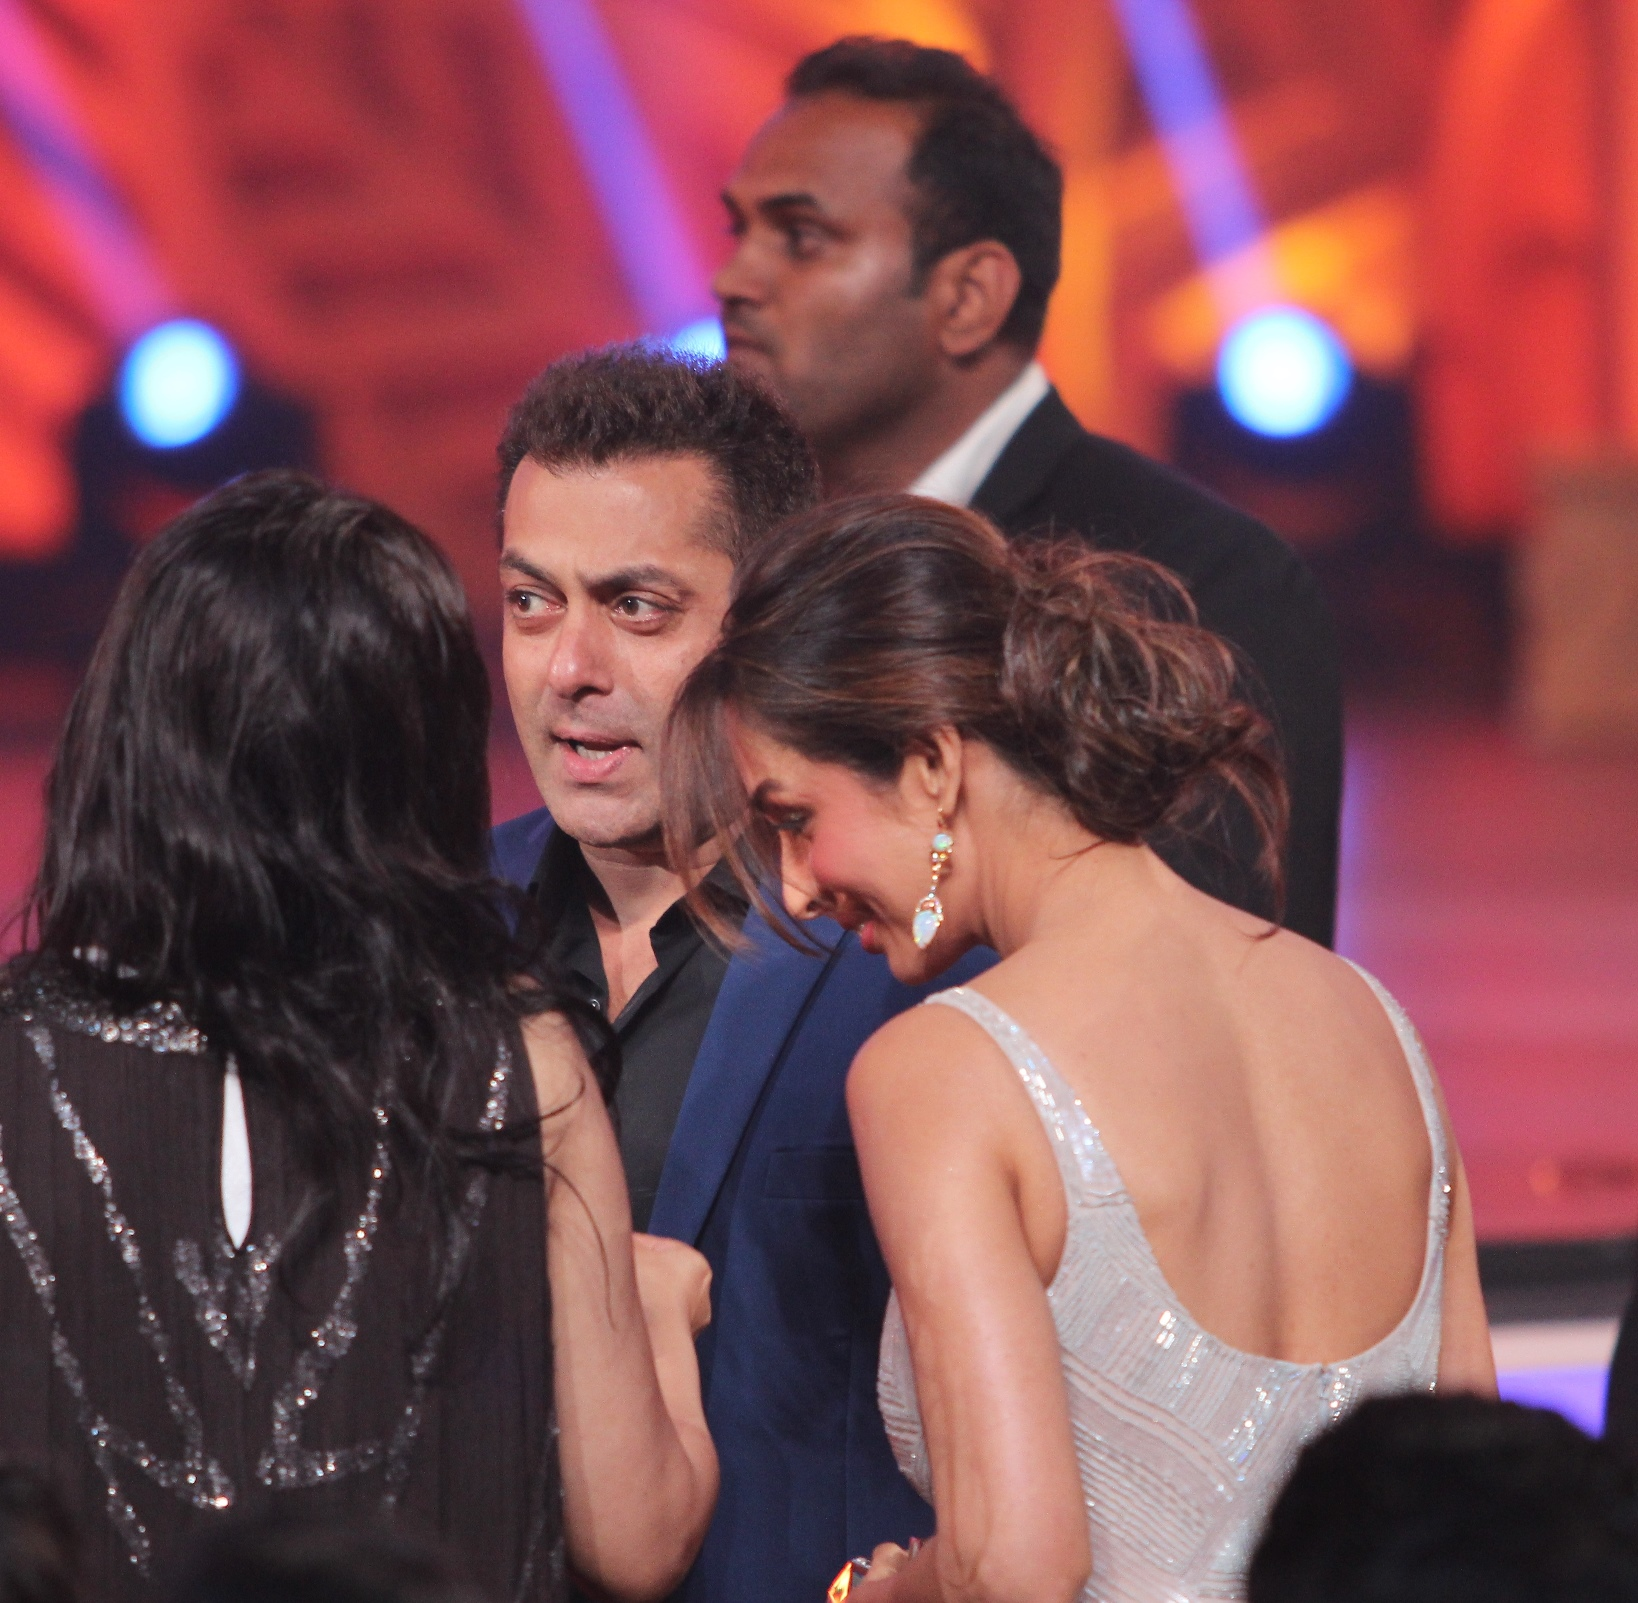 Colors Golden Petal Awards 2016: Salman Khan And Malaika Arora Khan Greet Eachother At